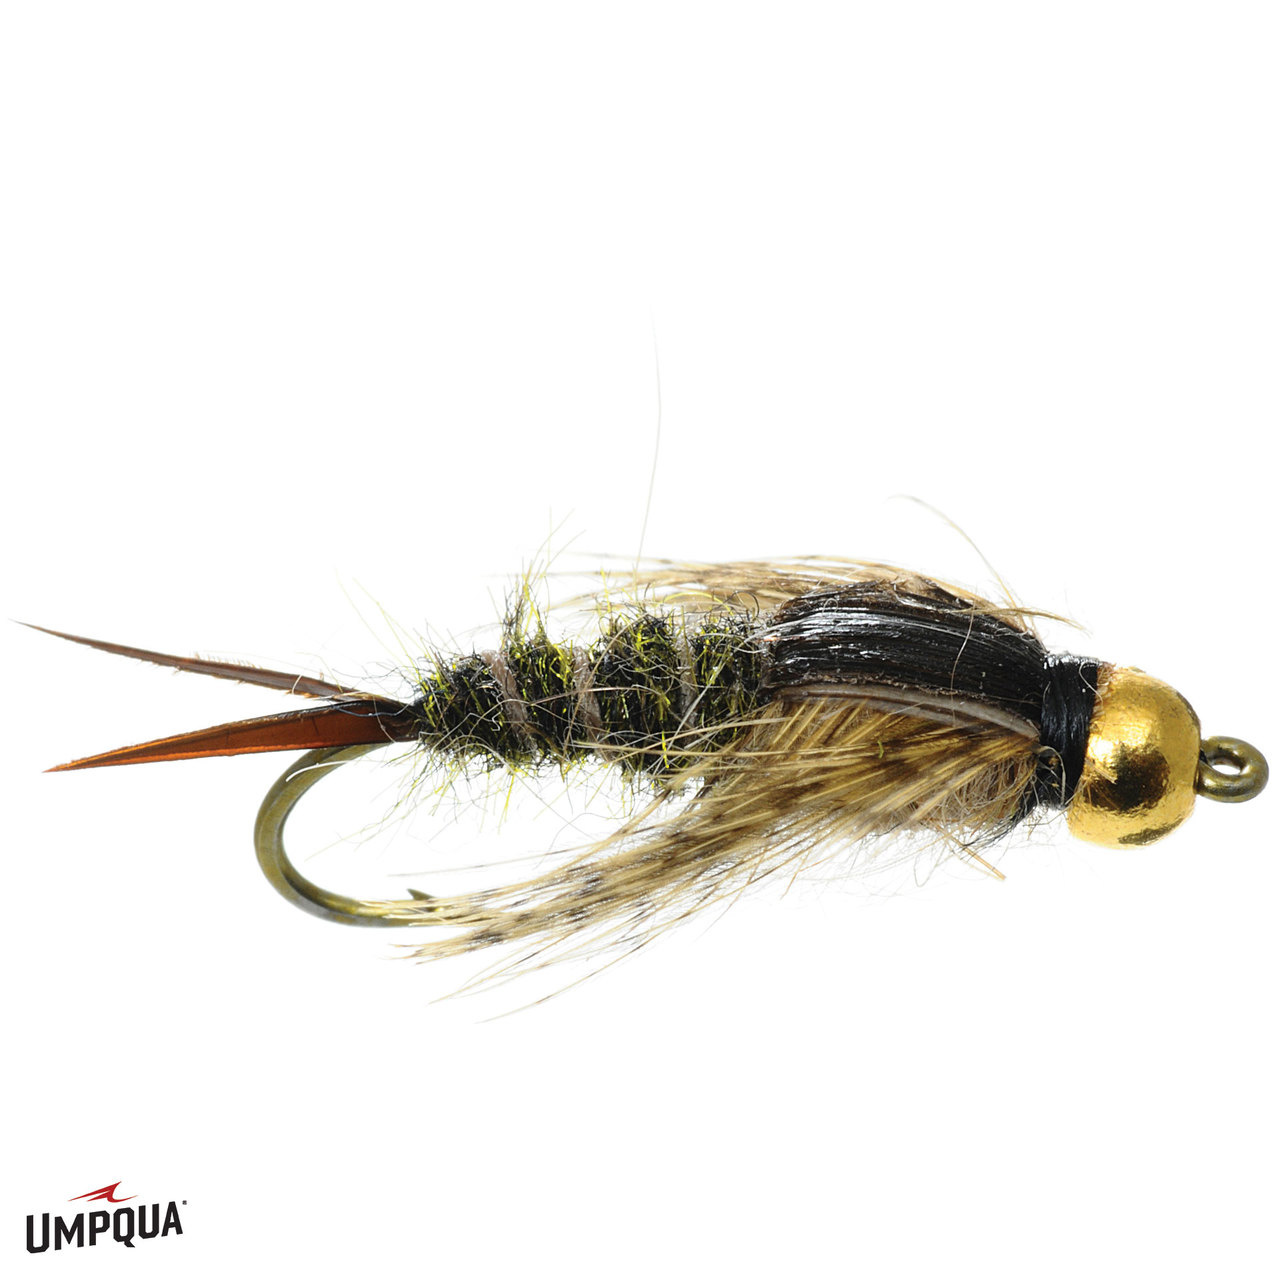 Umpqua,Solitude 20 Incher